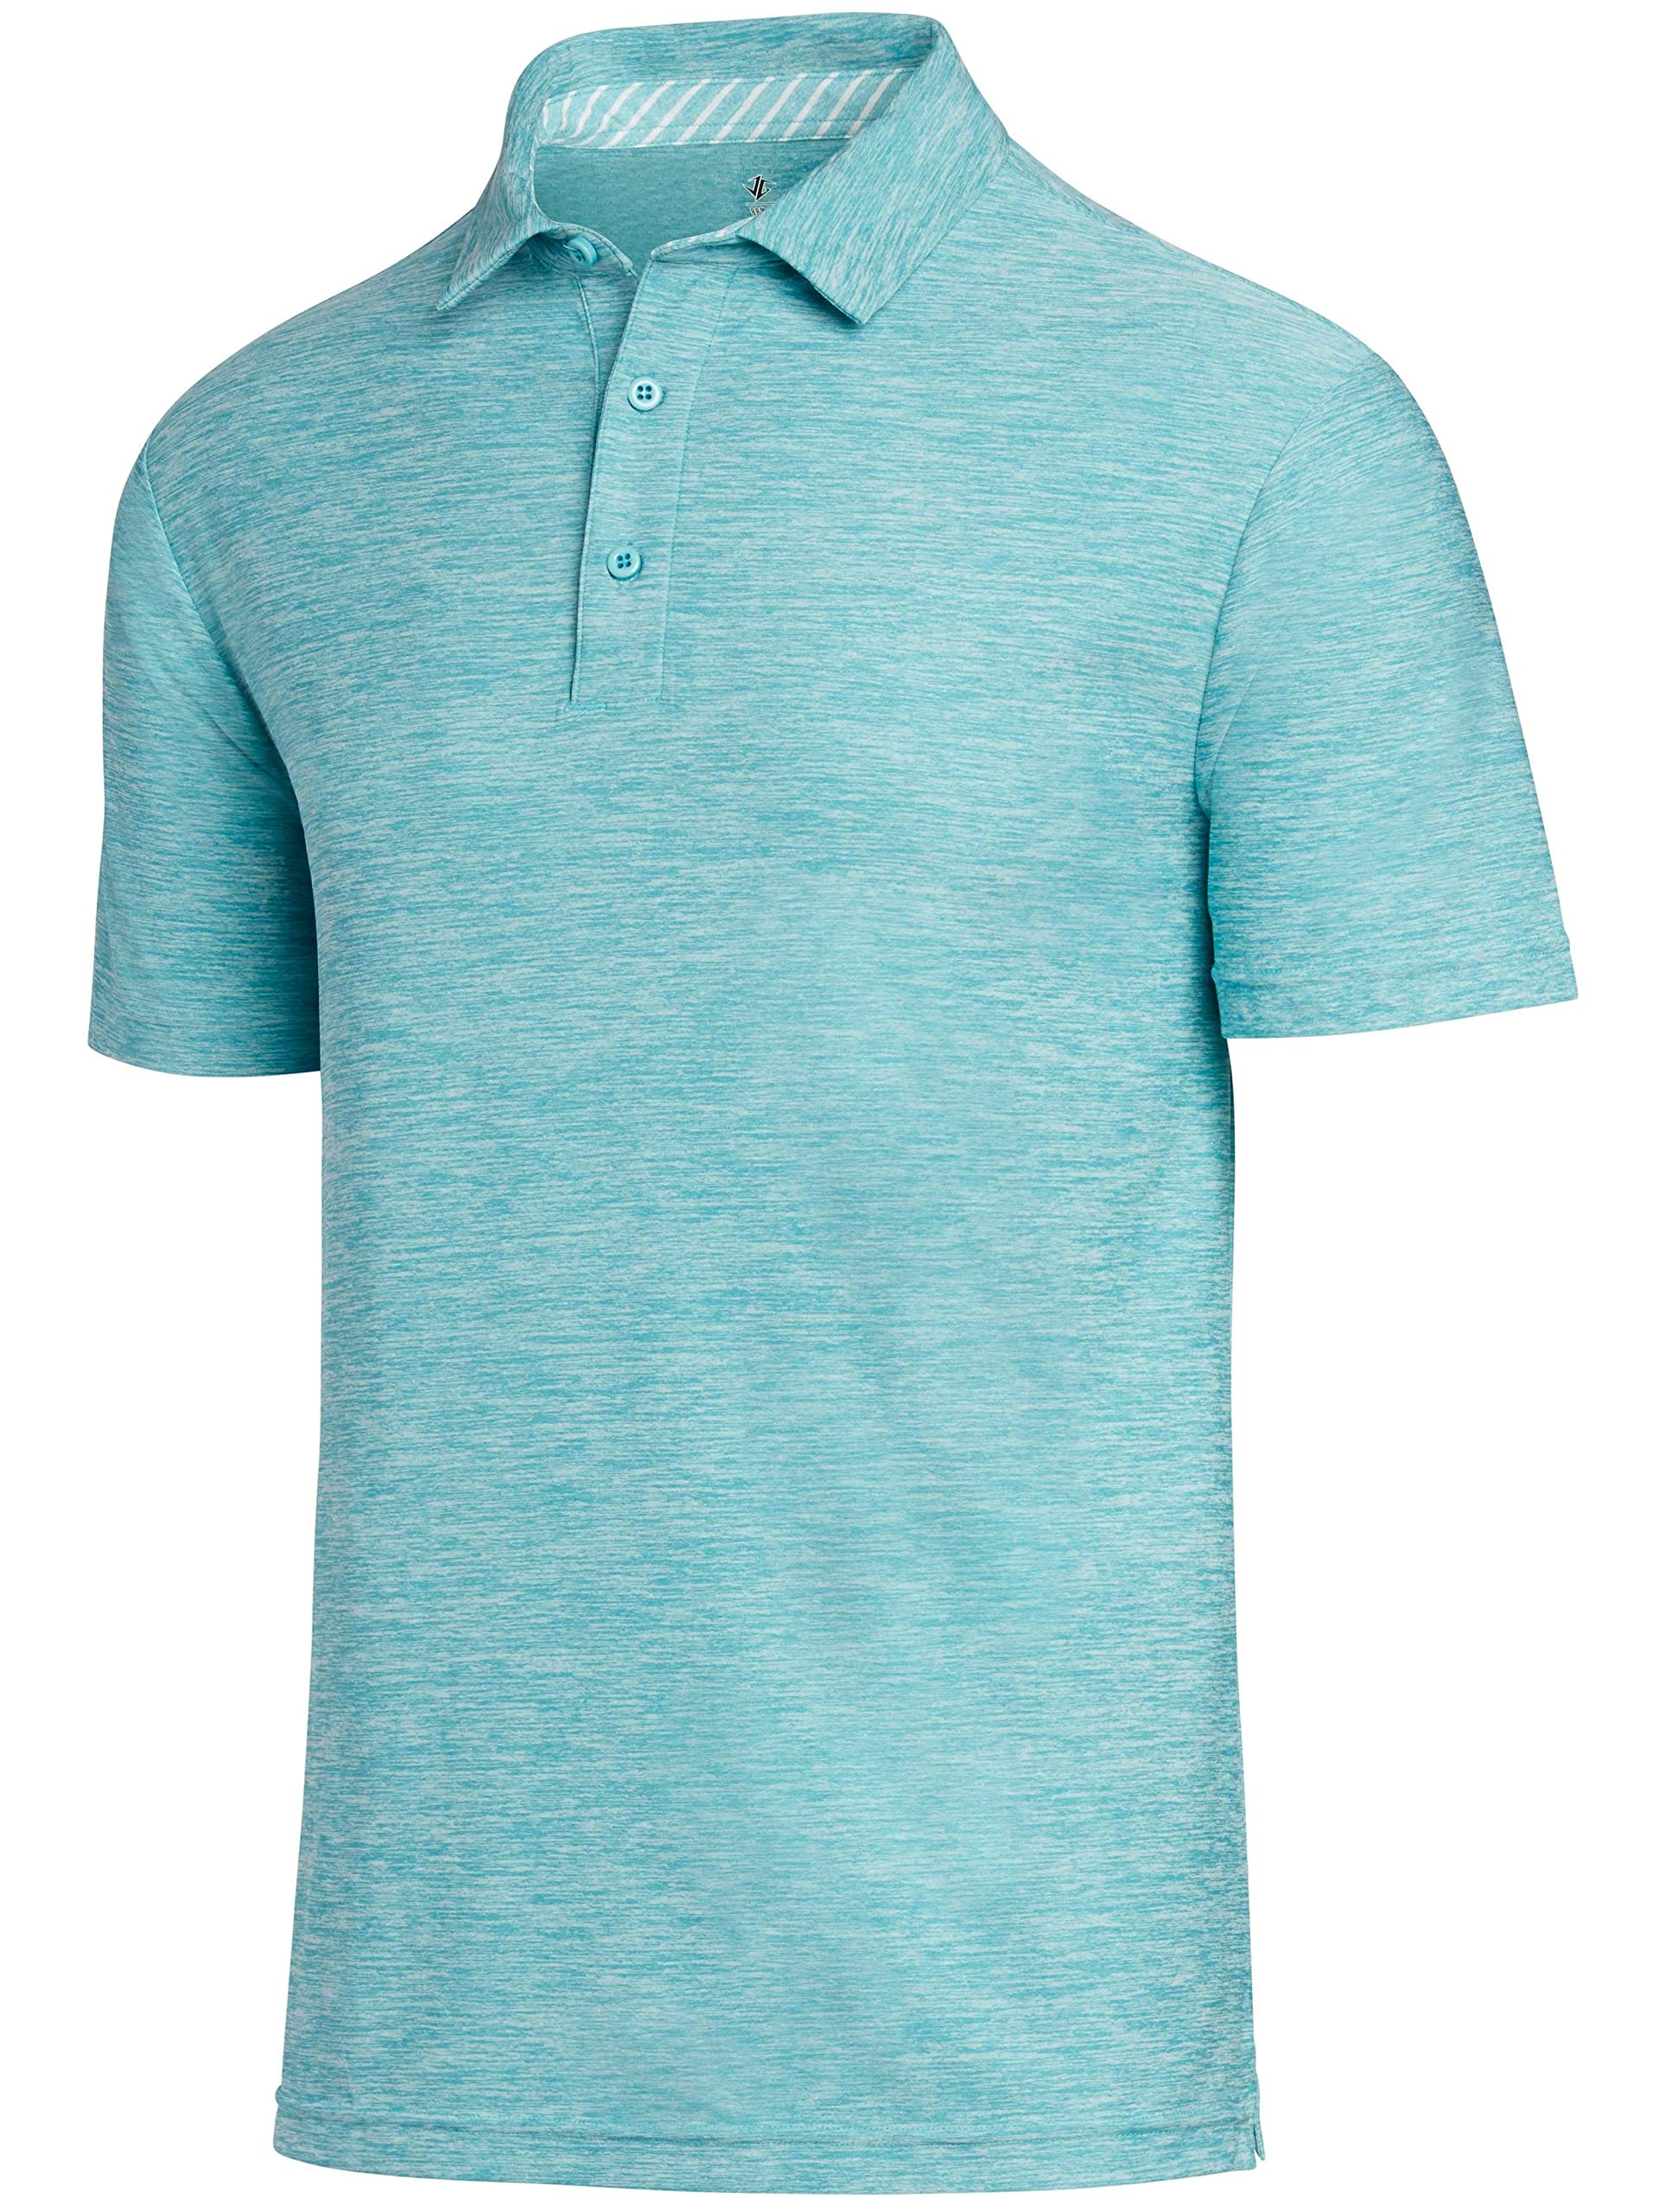 f661c9a3 Galleon - Jolt Gear Golf Shirts For Men - Dry Fit Short-Sleeve Polo,  Athletic Casual Collared T-Shirt Turquoise